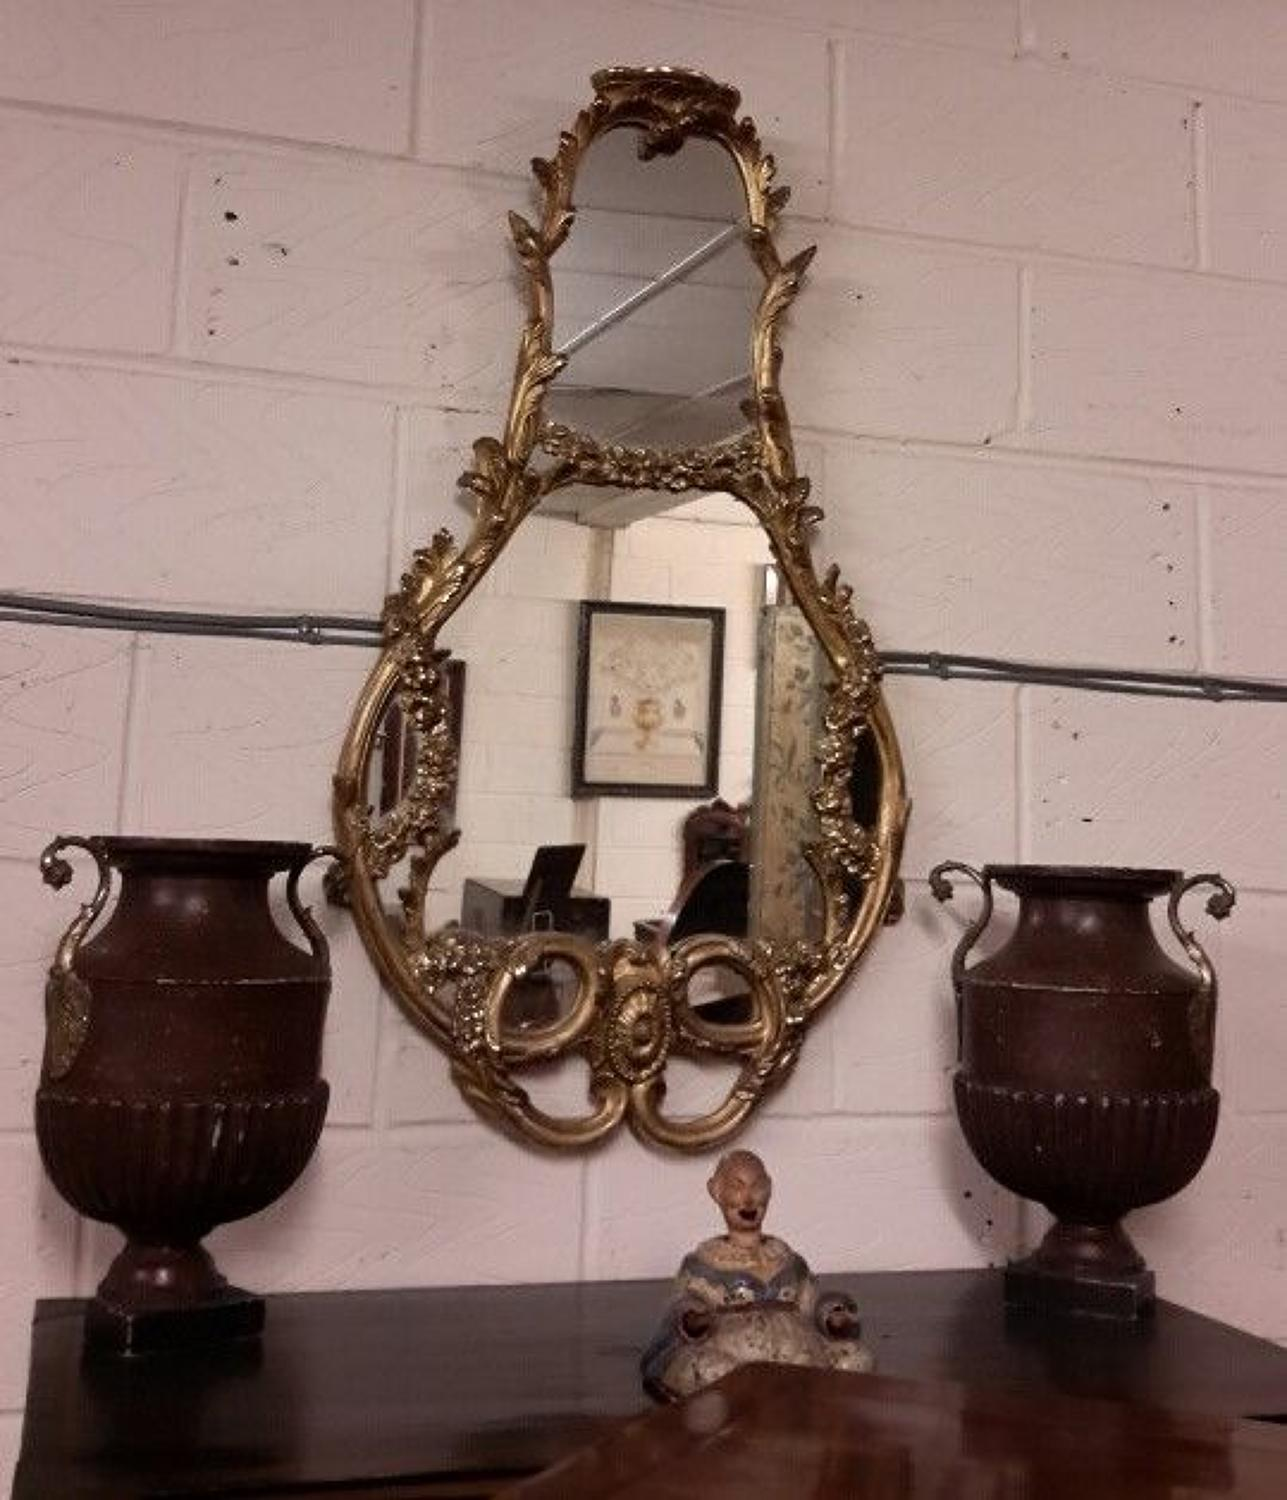 C19th shaped giltwood and gesso wall mirror